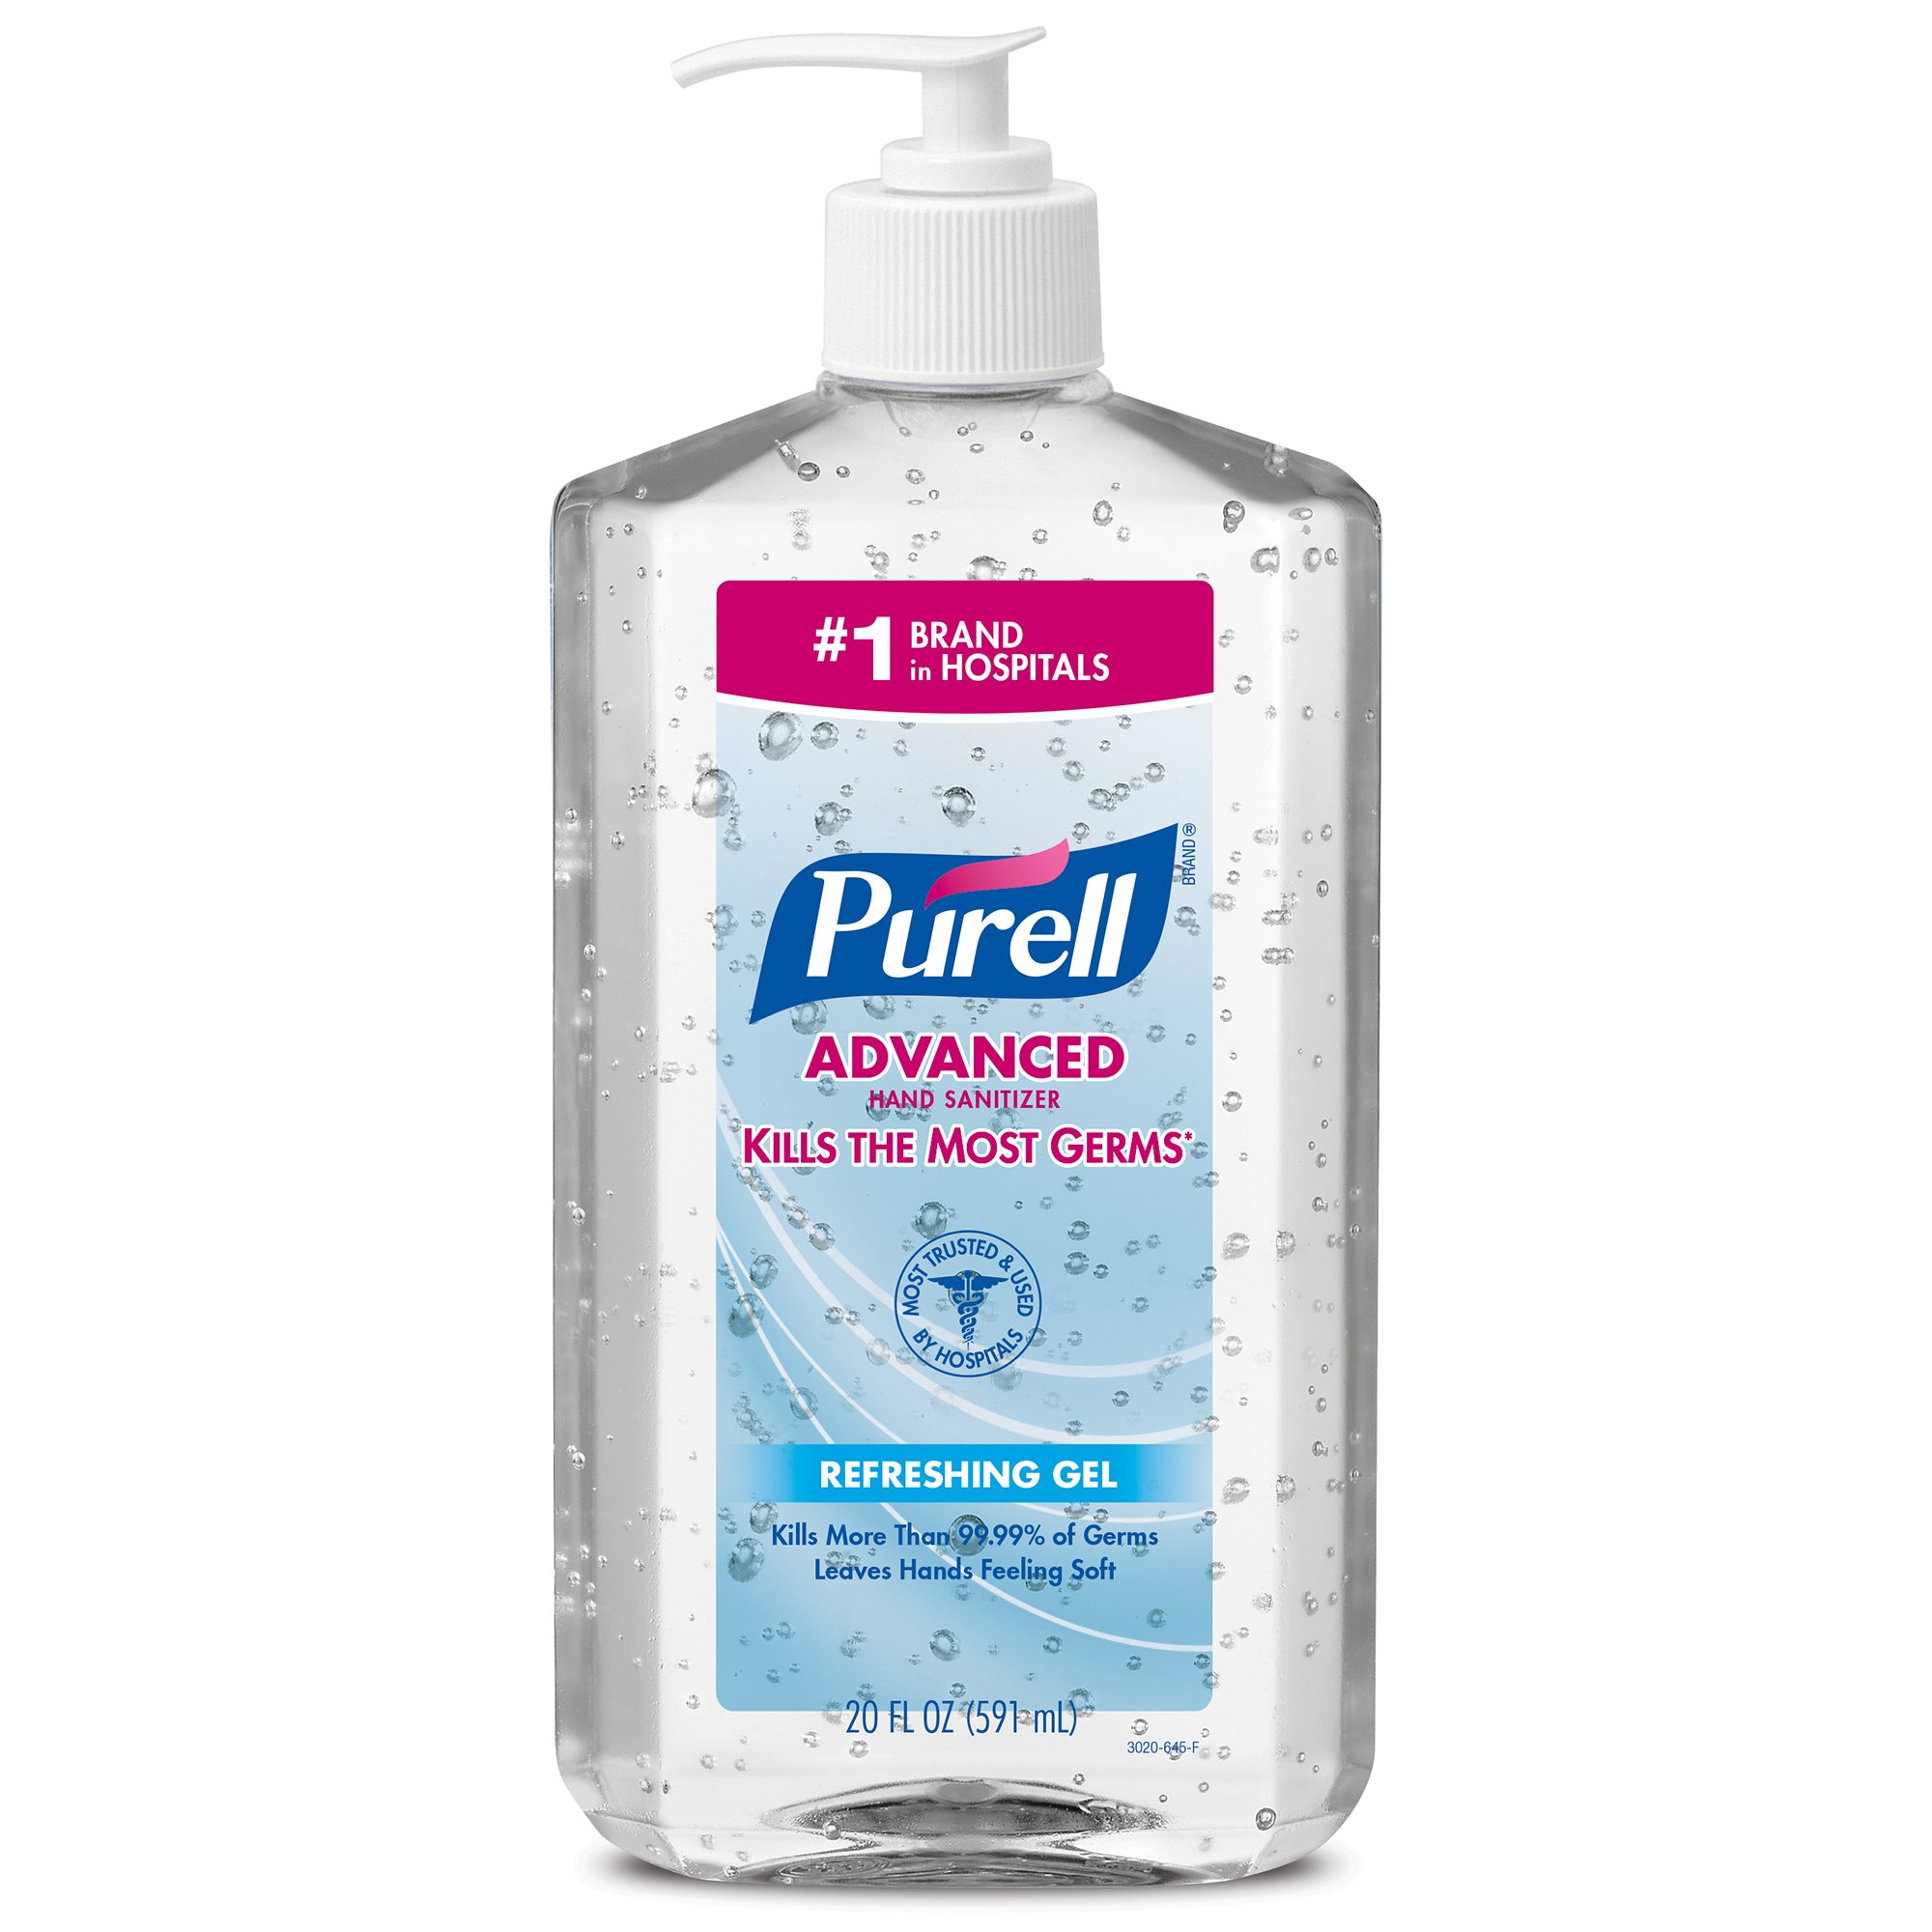 PURELL Advanced Hand Sanitizer Bottle -  Hand Sanitizer Gel, 20 fl oz Pump Bottle (Pack of 2) - 3023-12-EC